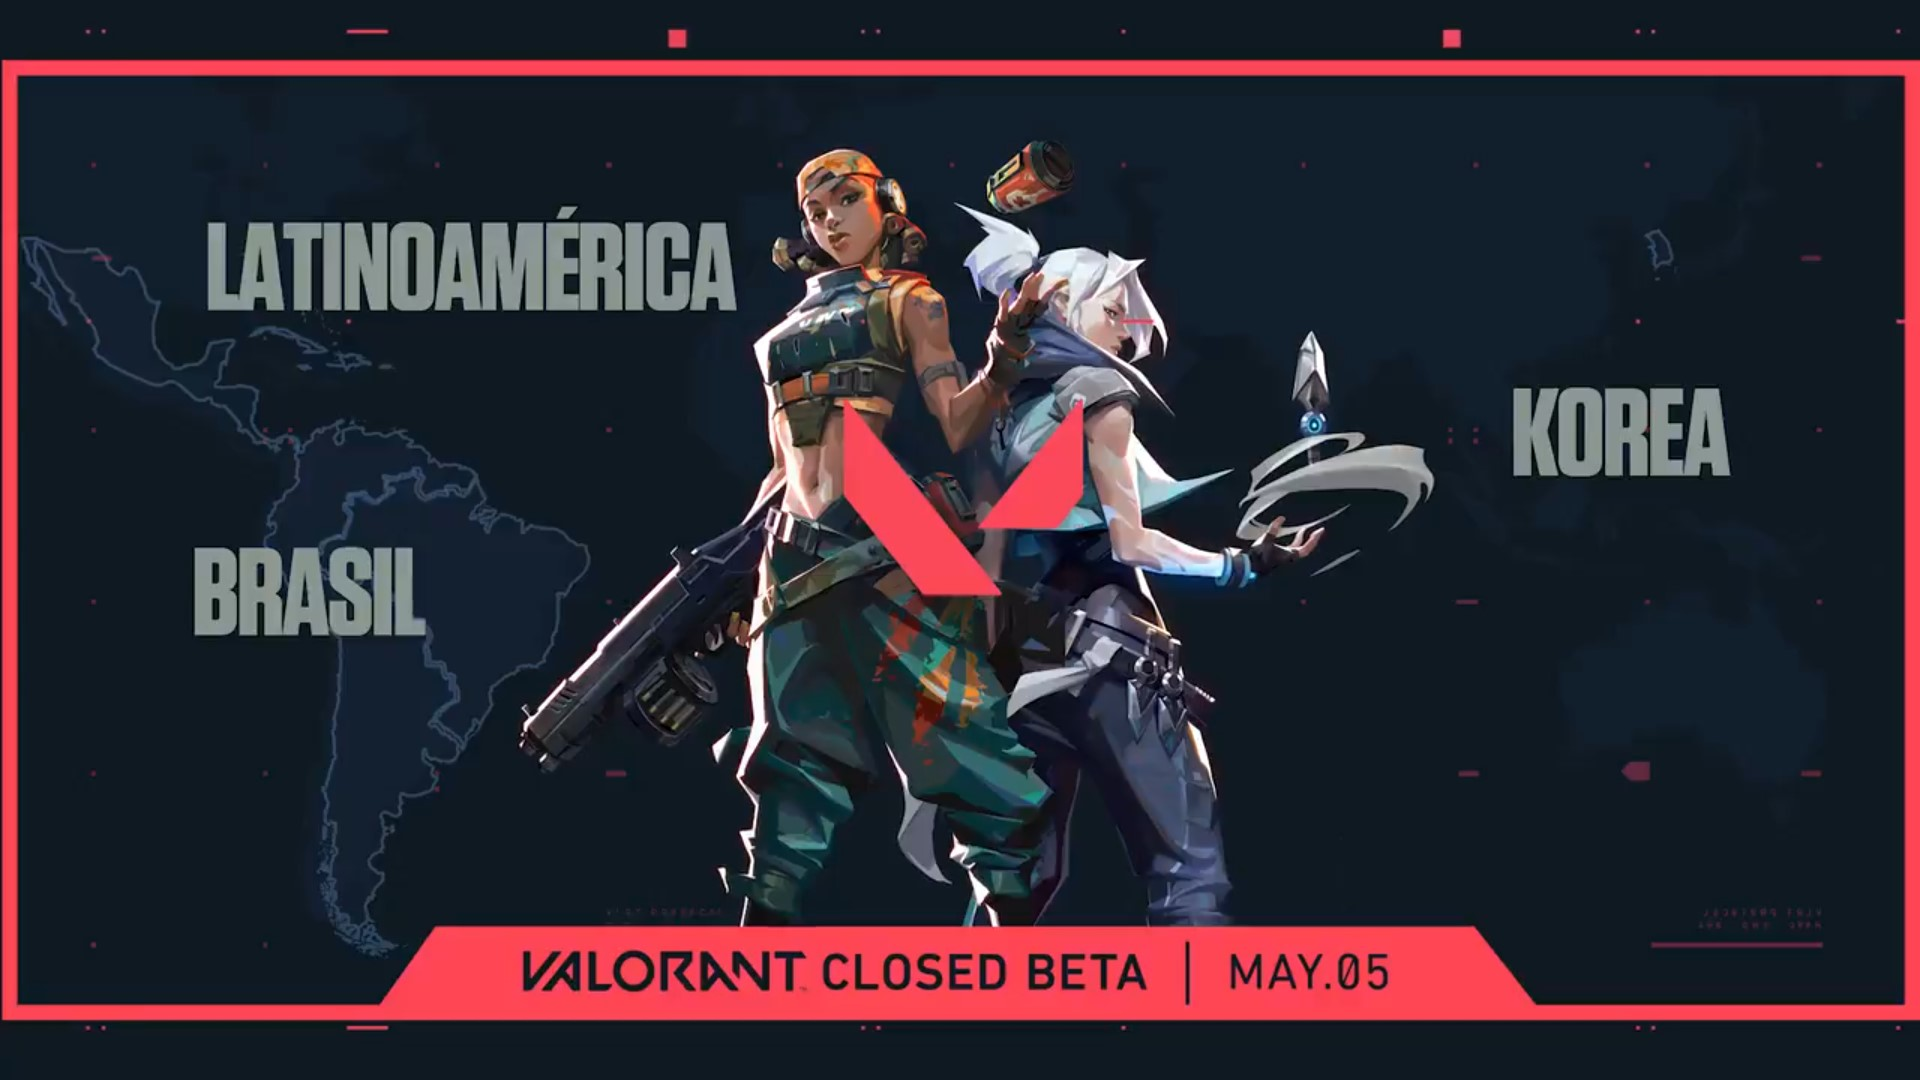 LATAM, Korea, and Brazil announced with Agents Jett & Raze in an image in front of a map of the world with May 5 launch date